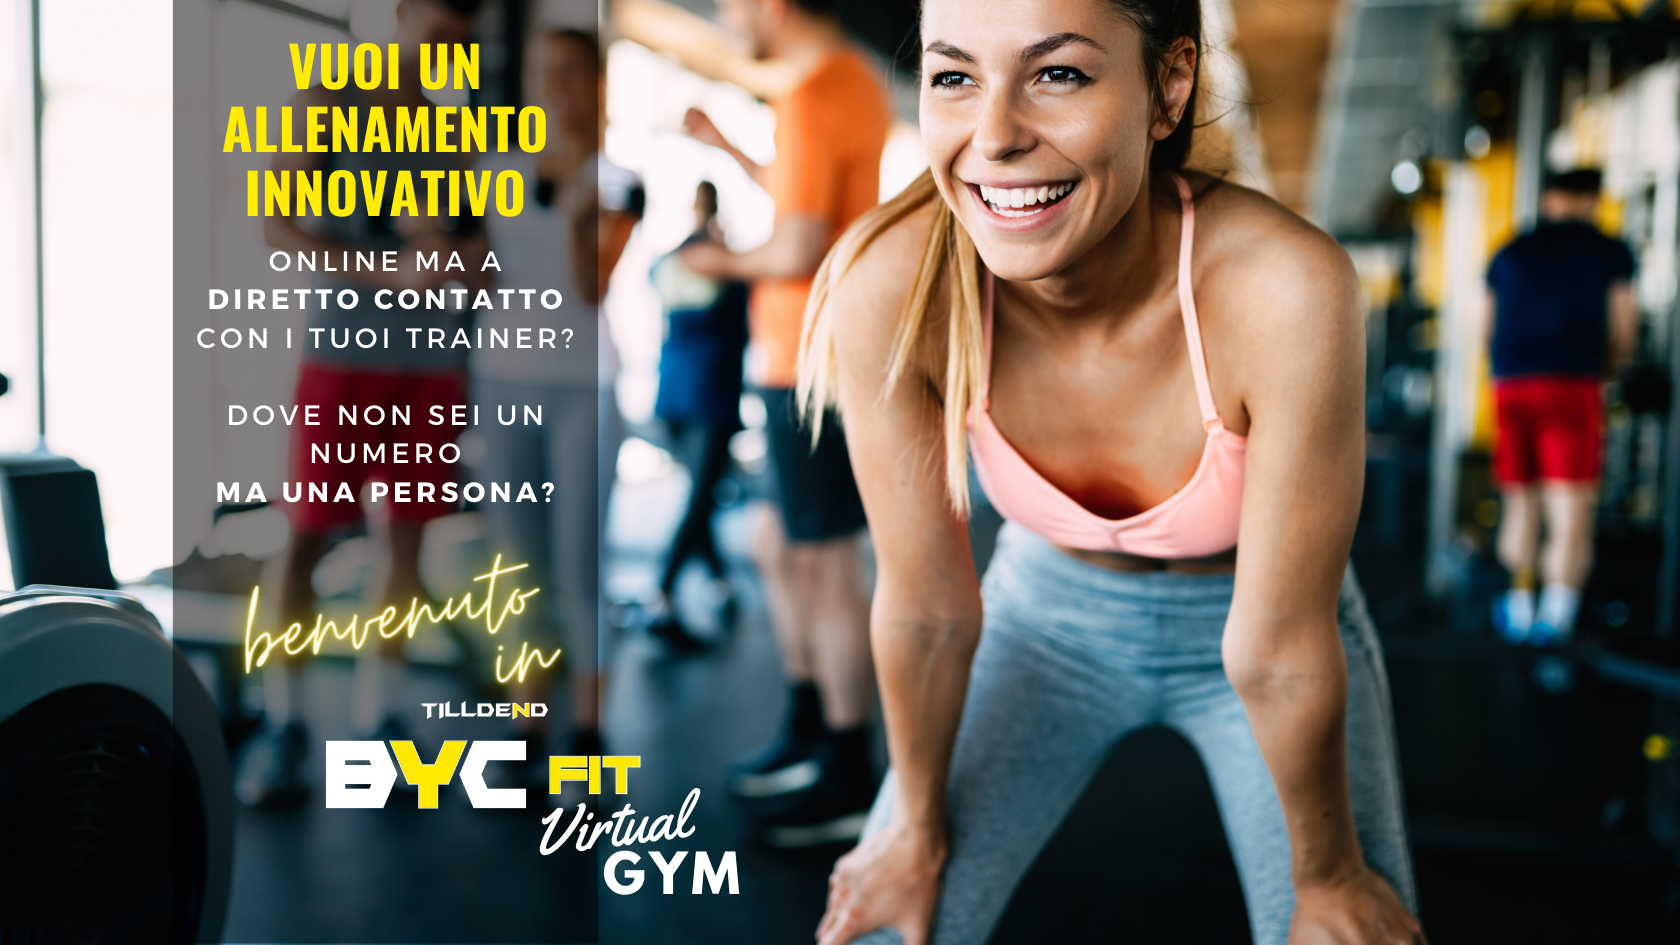 TILLDEND BYC FIT VIRTUAL GYM palestra virtuale